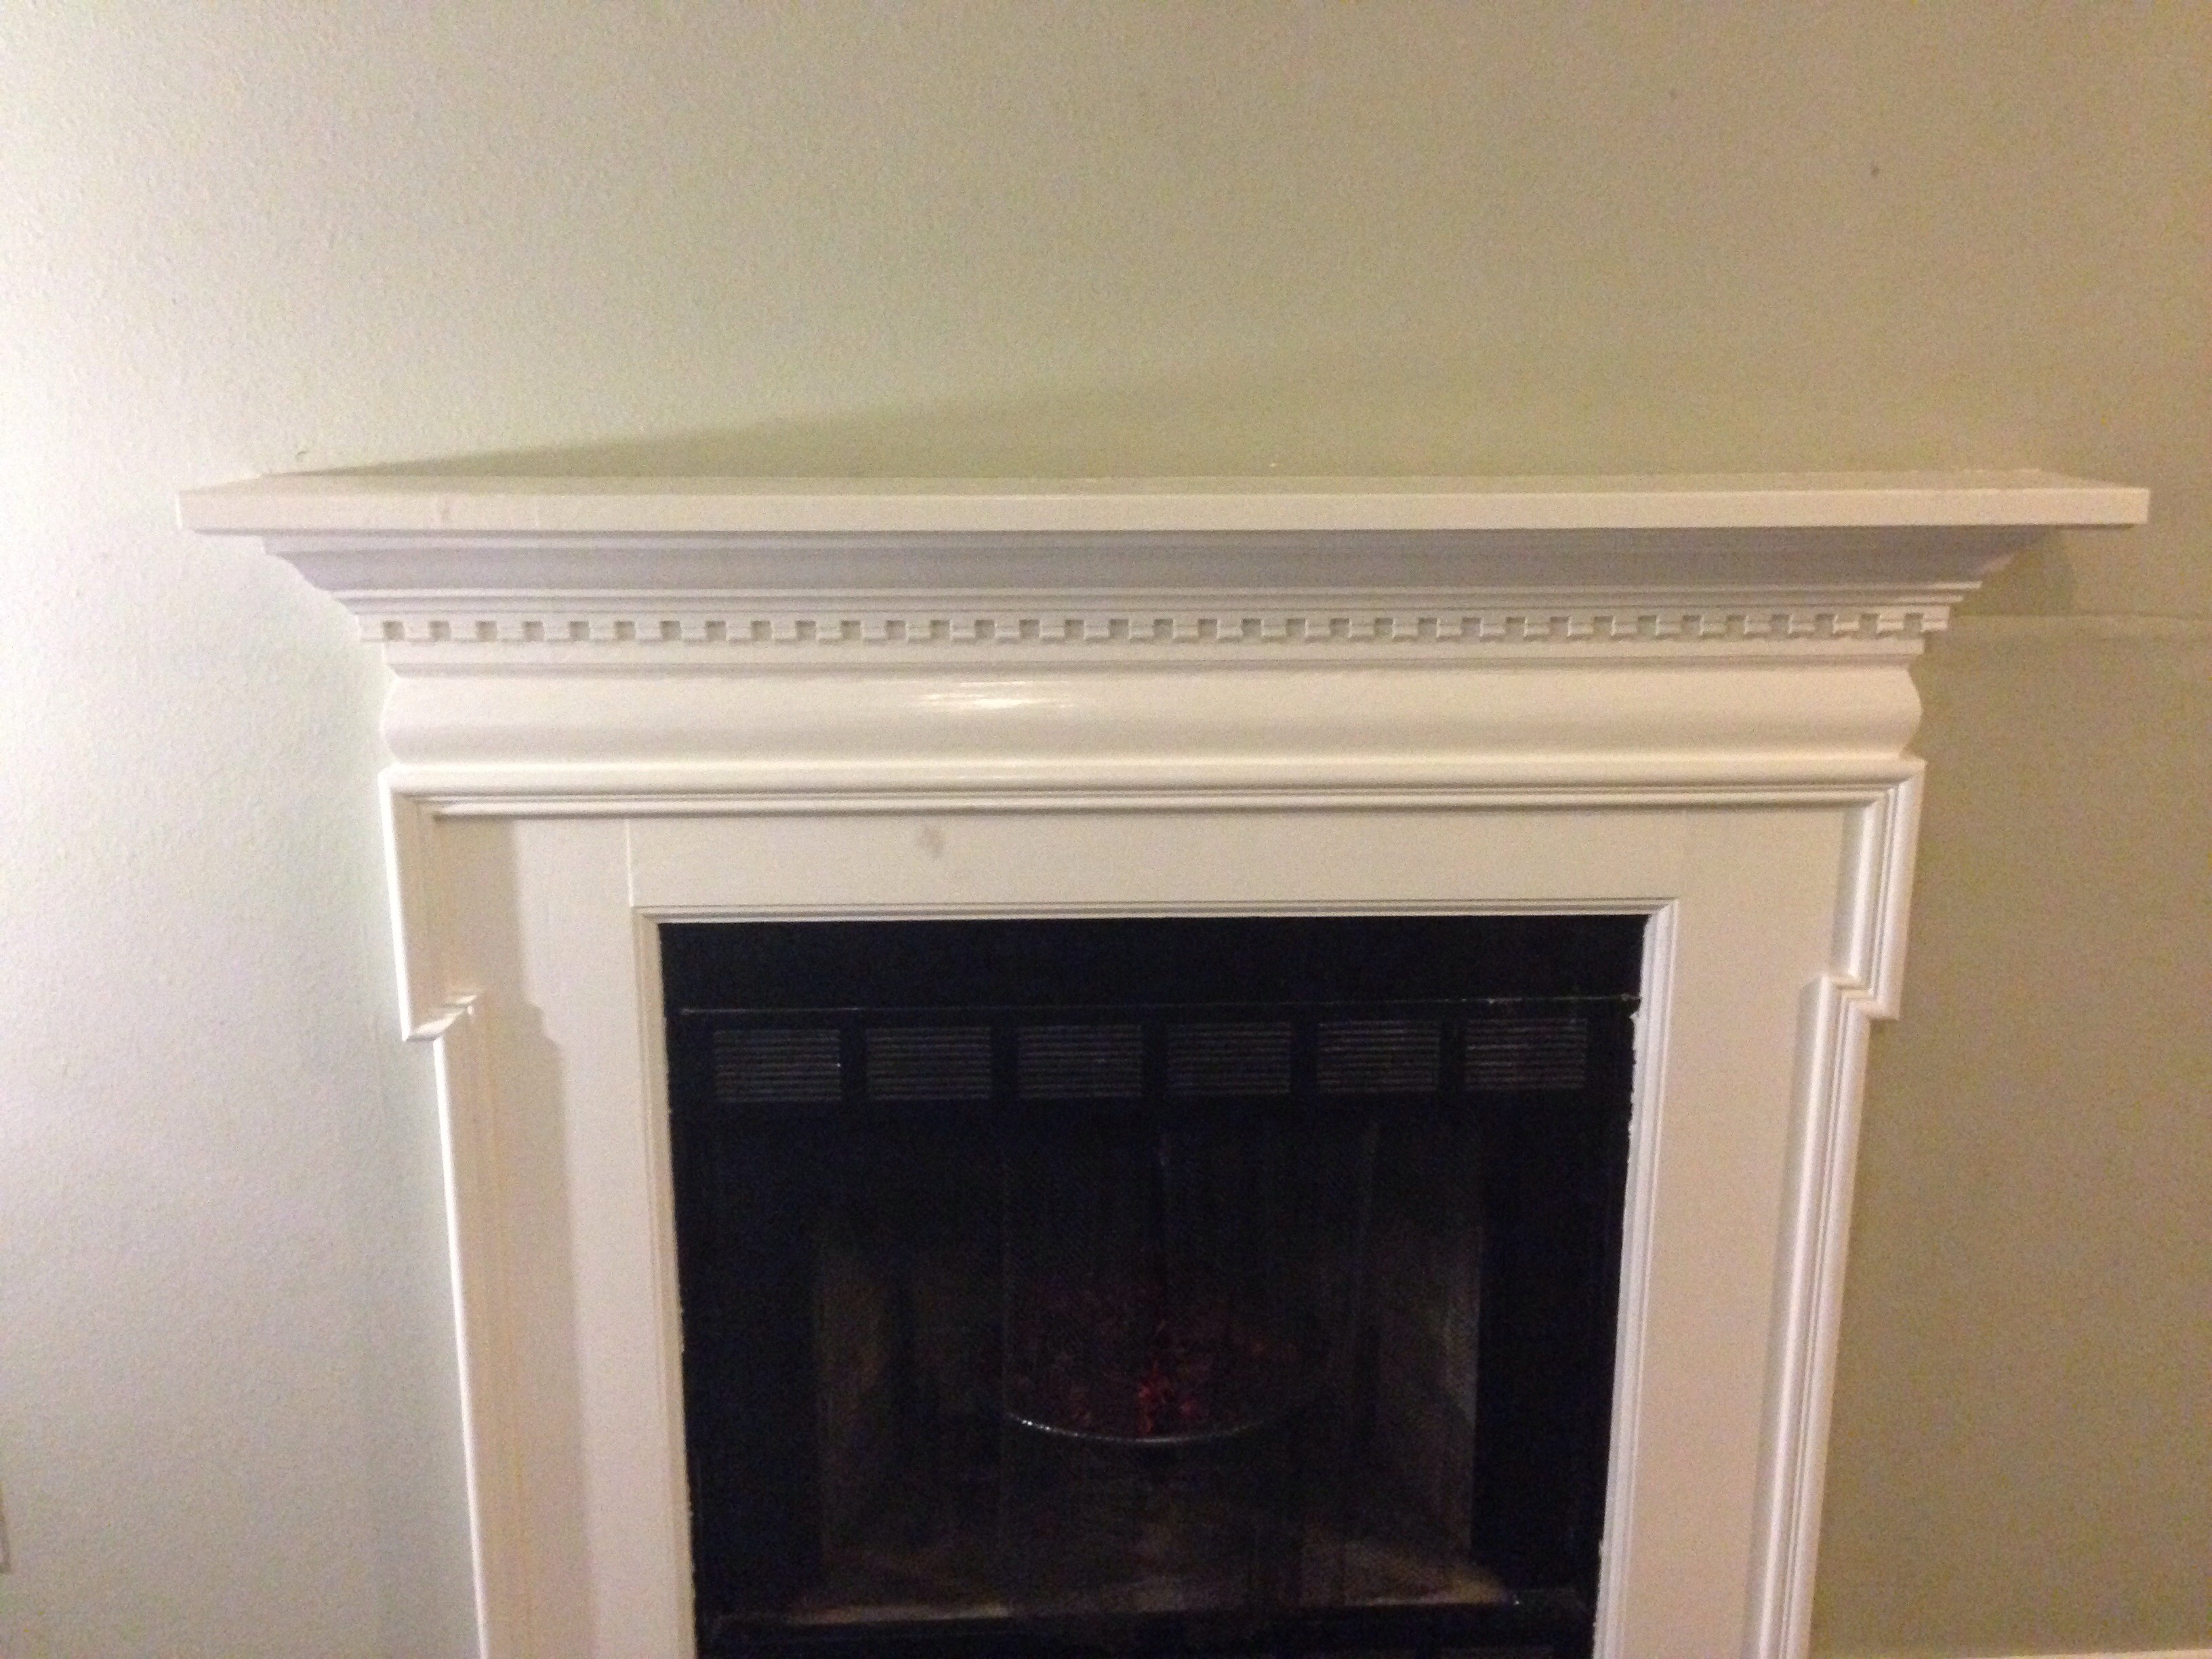 Fireplace Mantel Expansion For Your Tv 6 Steps Instructables